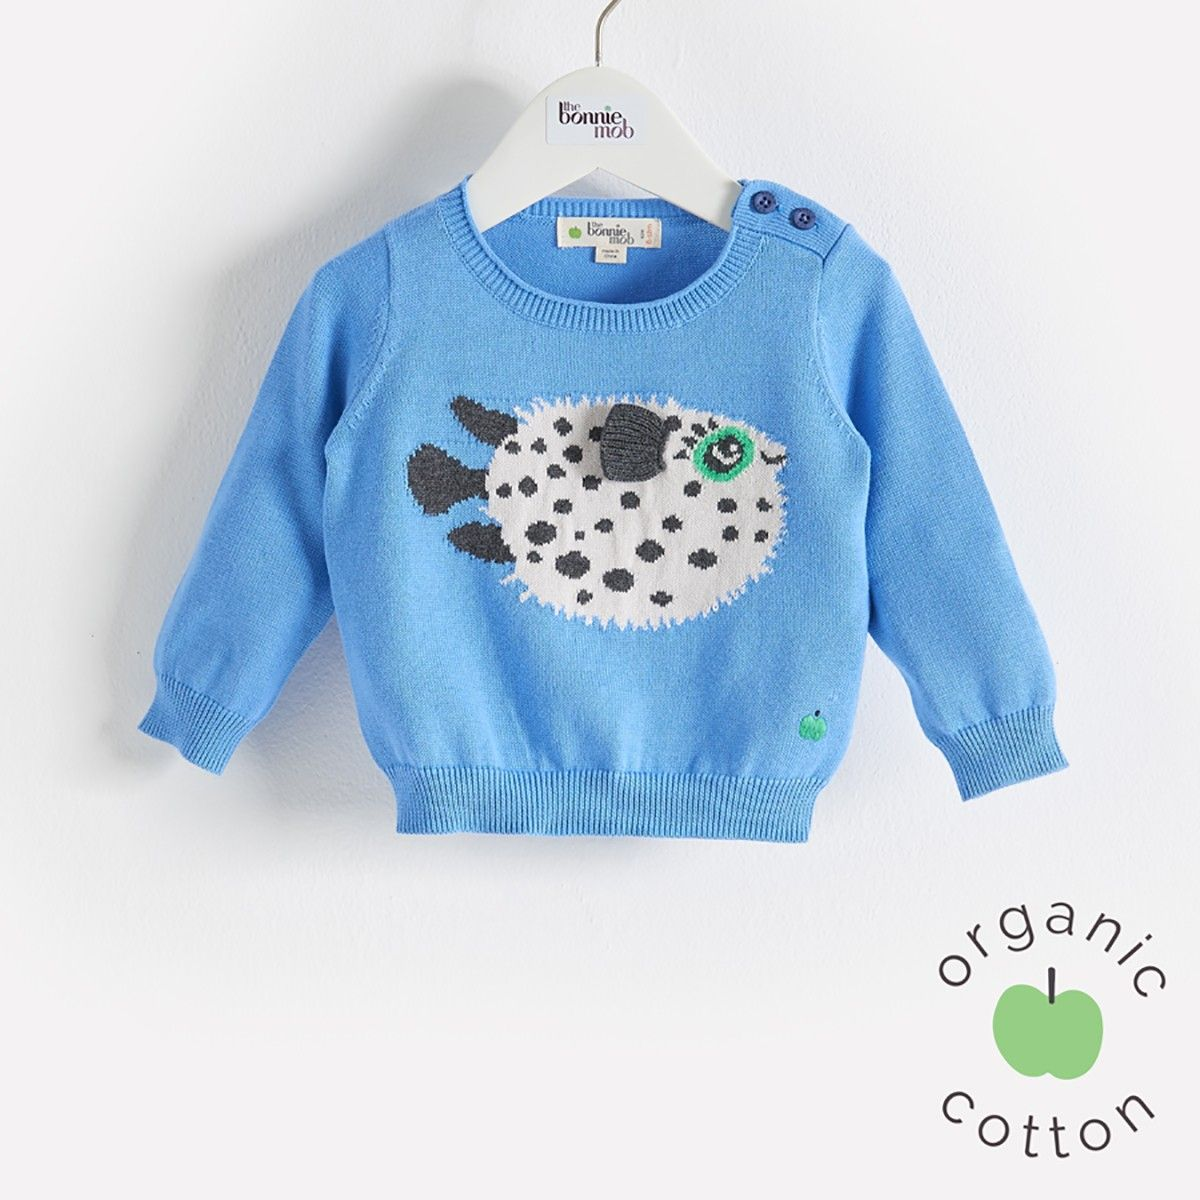 The Bonnie mob SS16 - The Life Aquatic. PUFFY Blue Pufferfish Sweater - Organic Cotton. Lightweight knitted sweater with 'puffer fish' intarsia design.